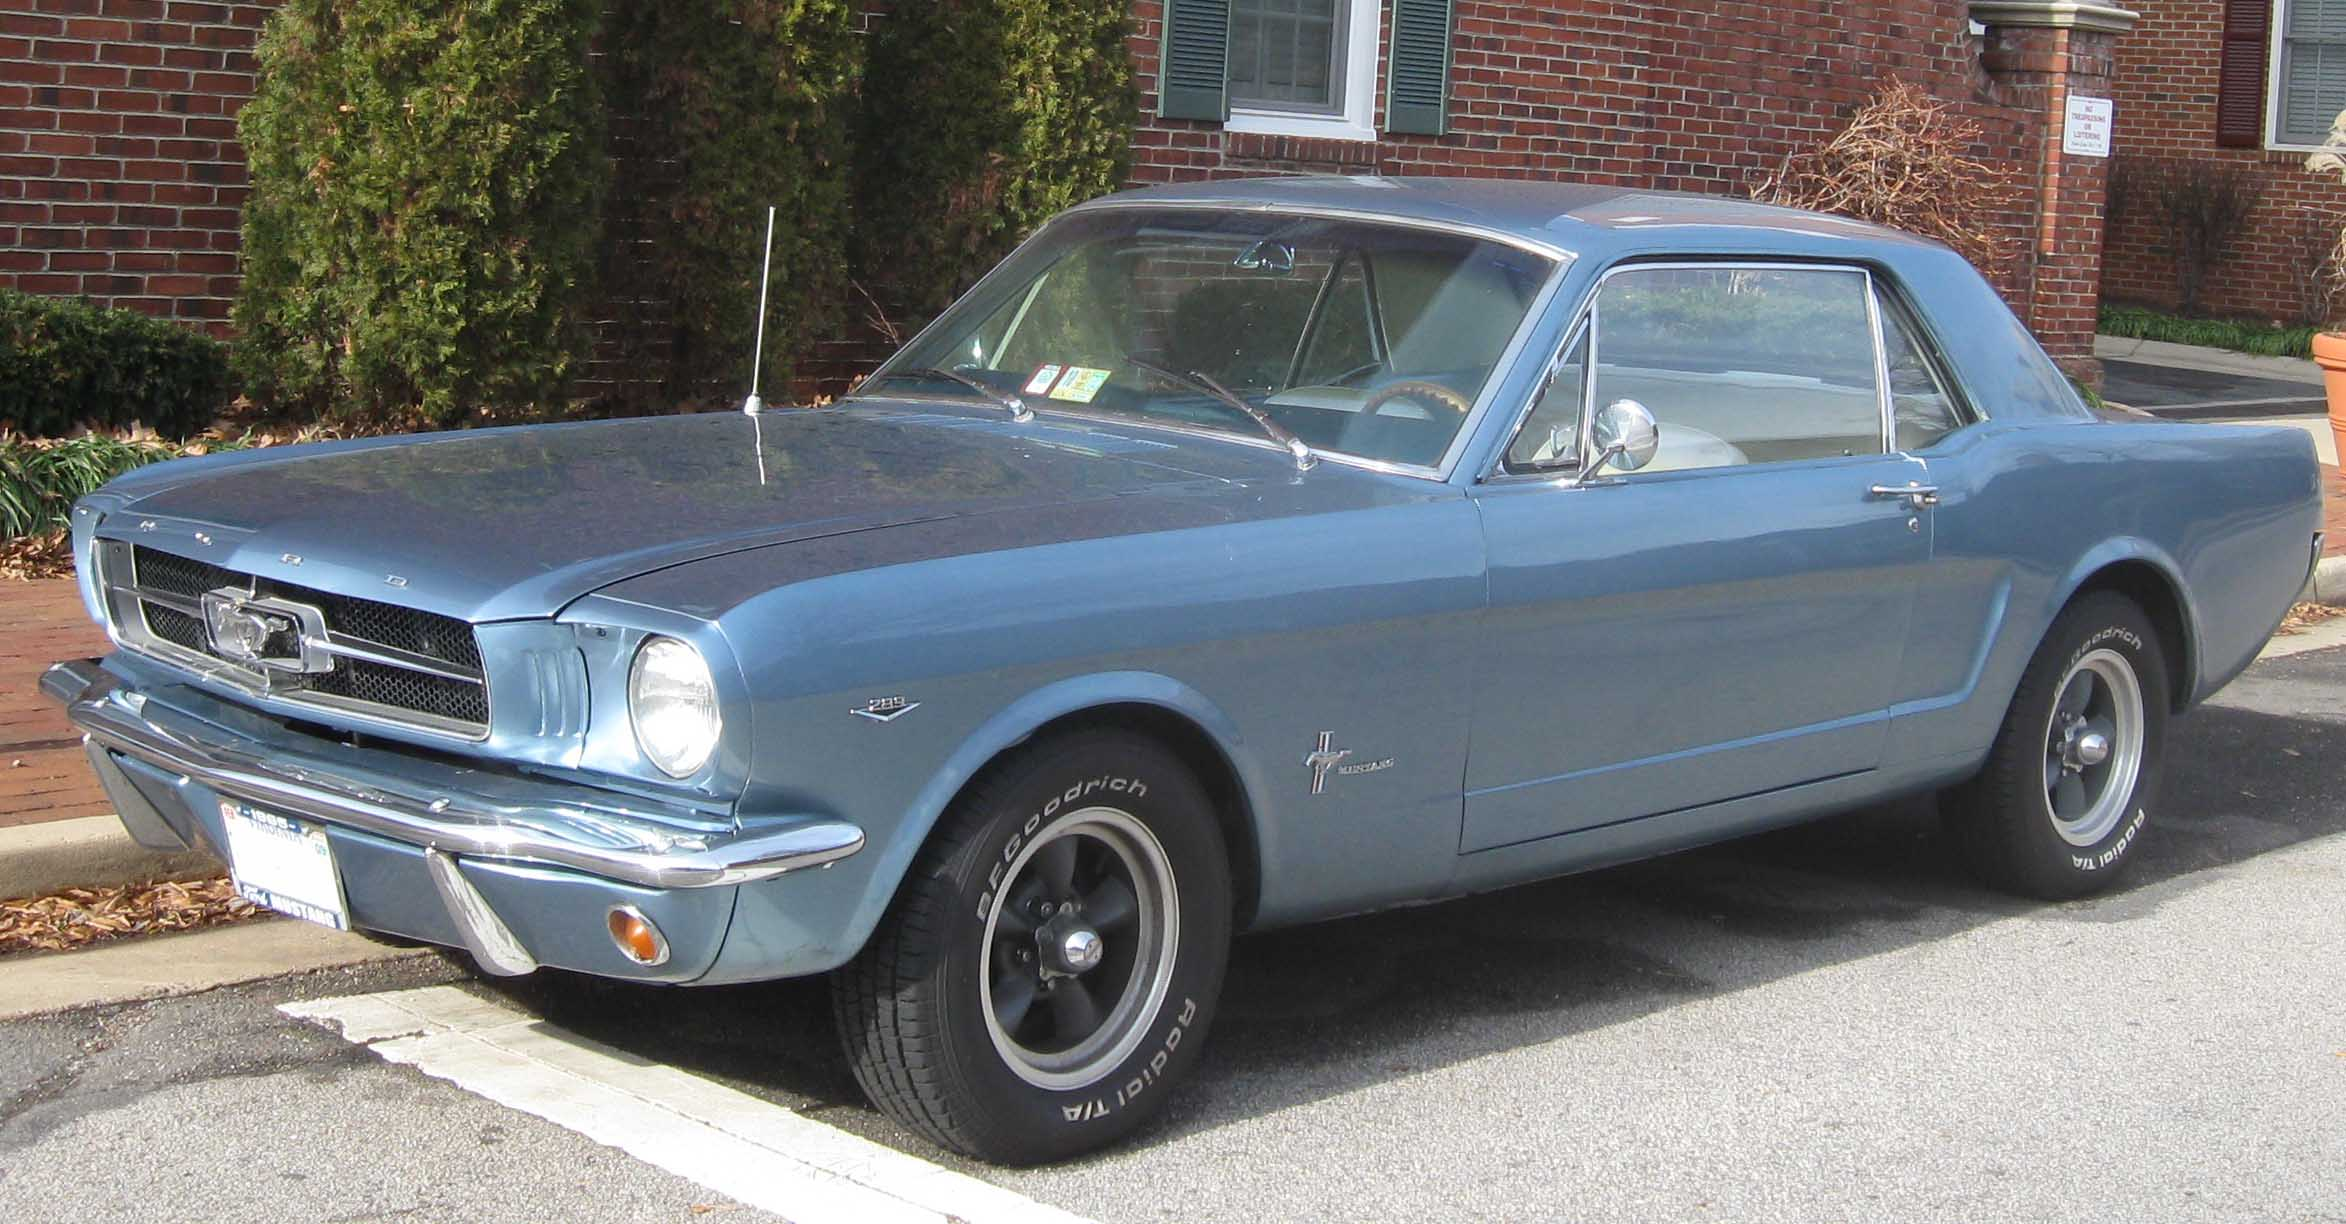 Ford Mustang first generation